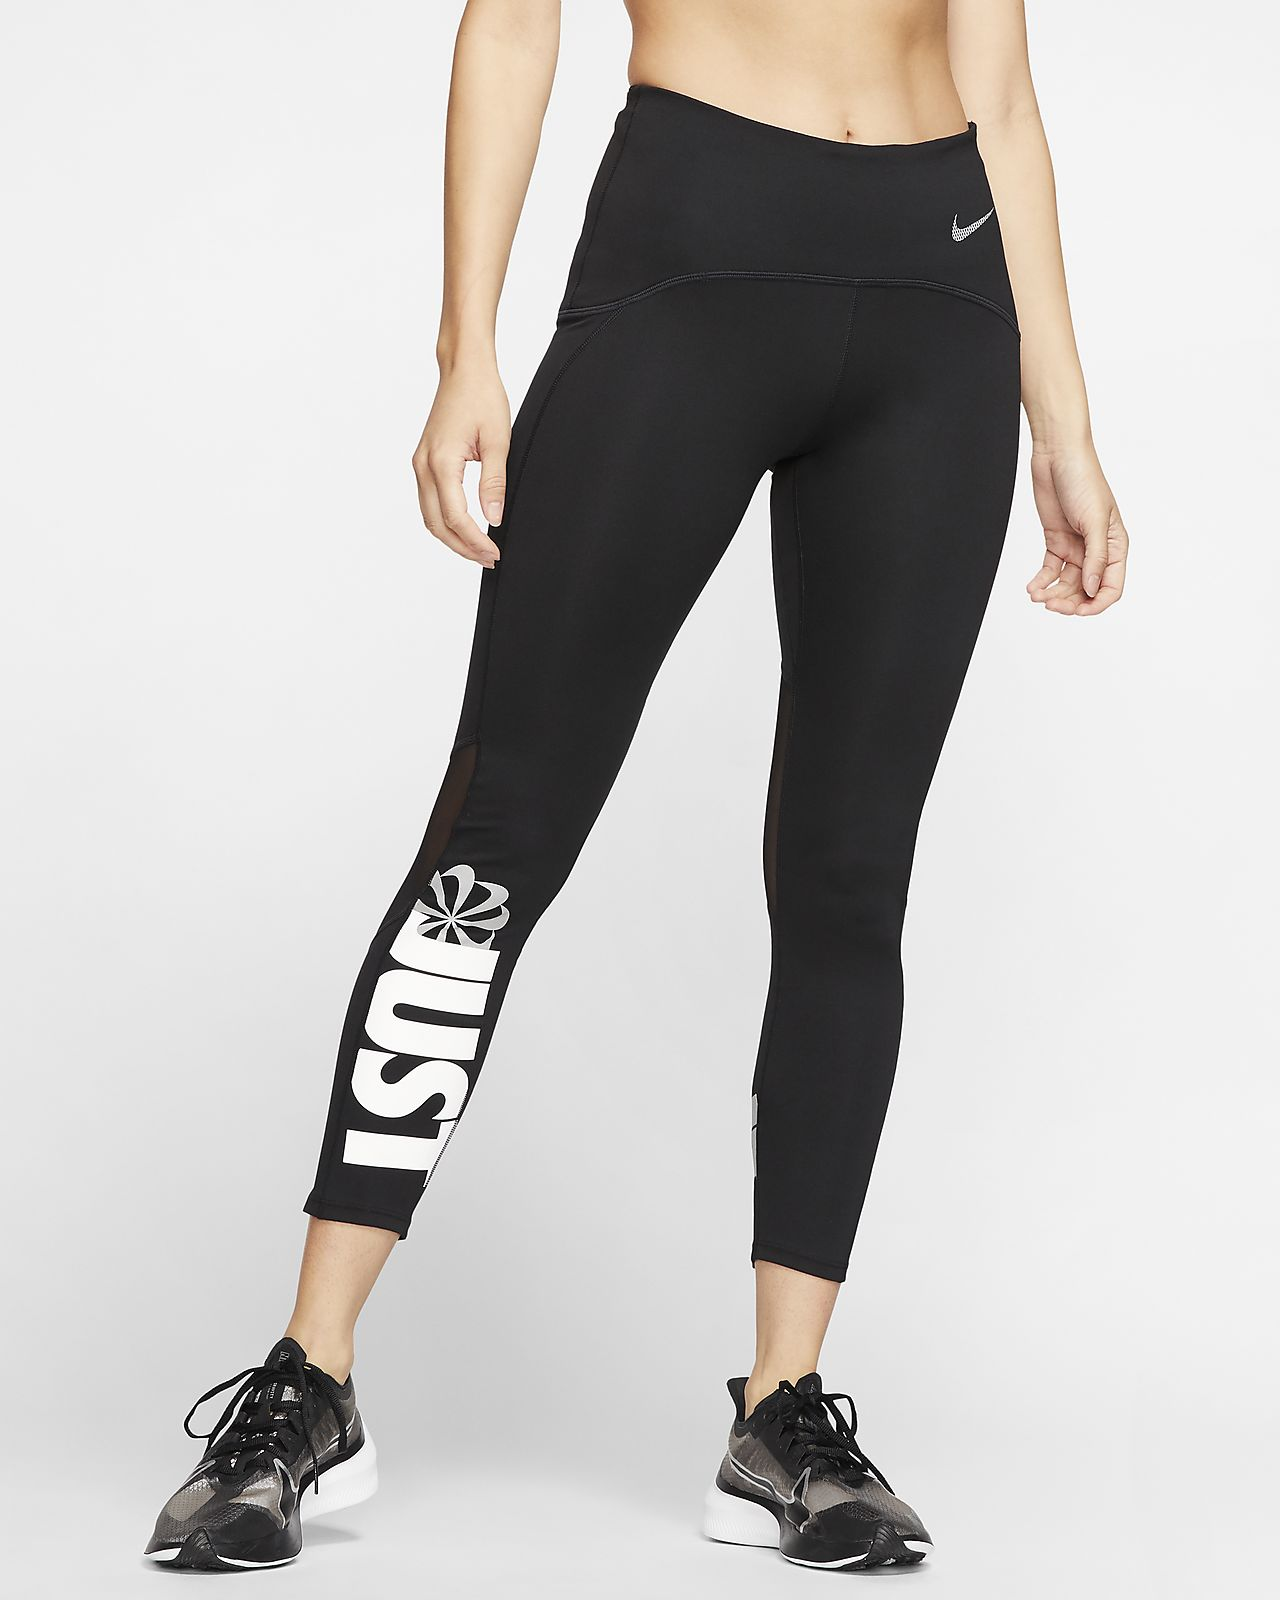 Tights de running a 7/8 Nike Speed Icon Clash para mulher